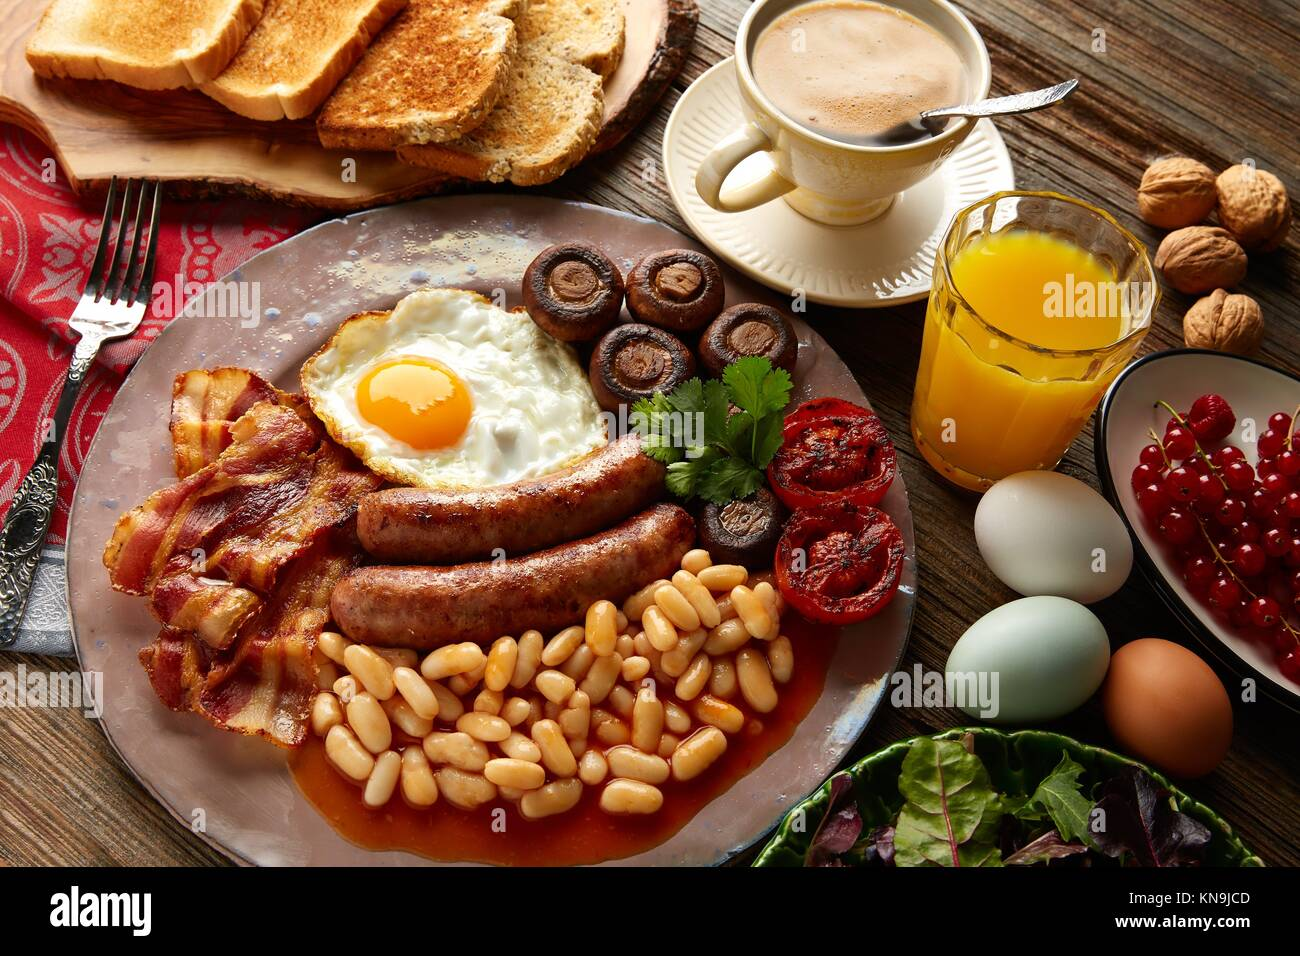 breakfast food coffee american fried egg sausage stock photos breakfast food coffee american. Black Bedroom Furniture Sets. Home Design Ideas